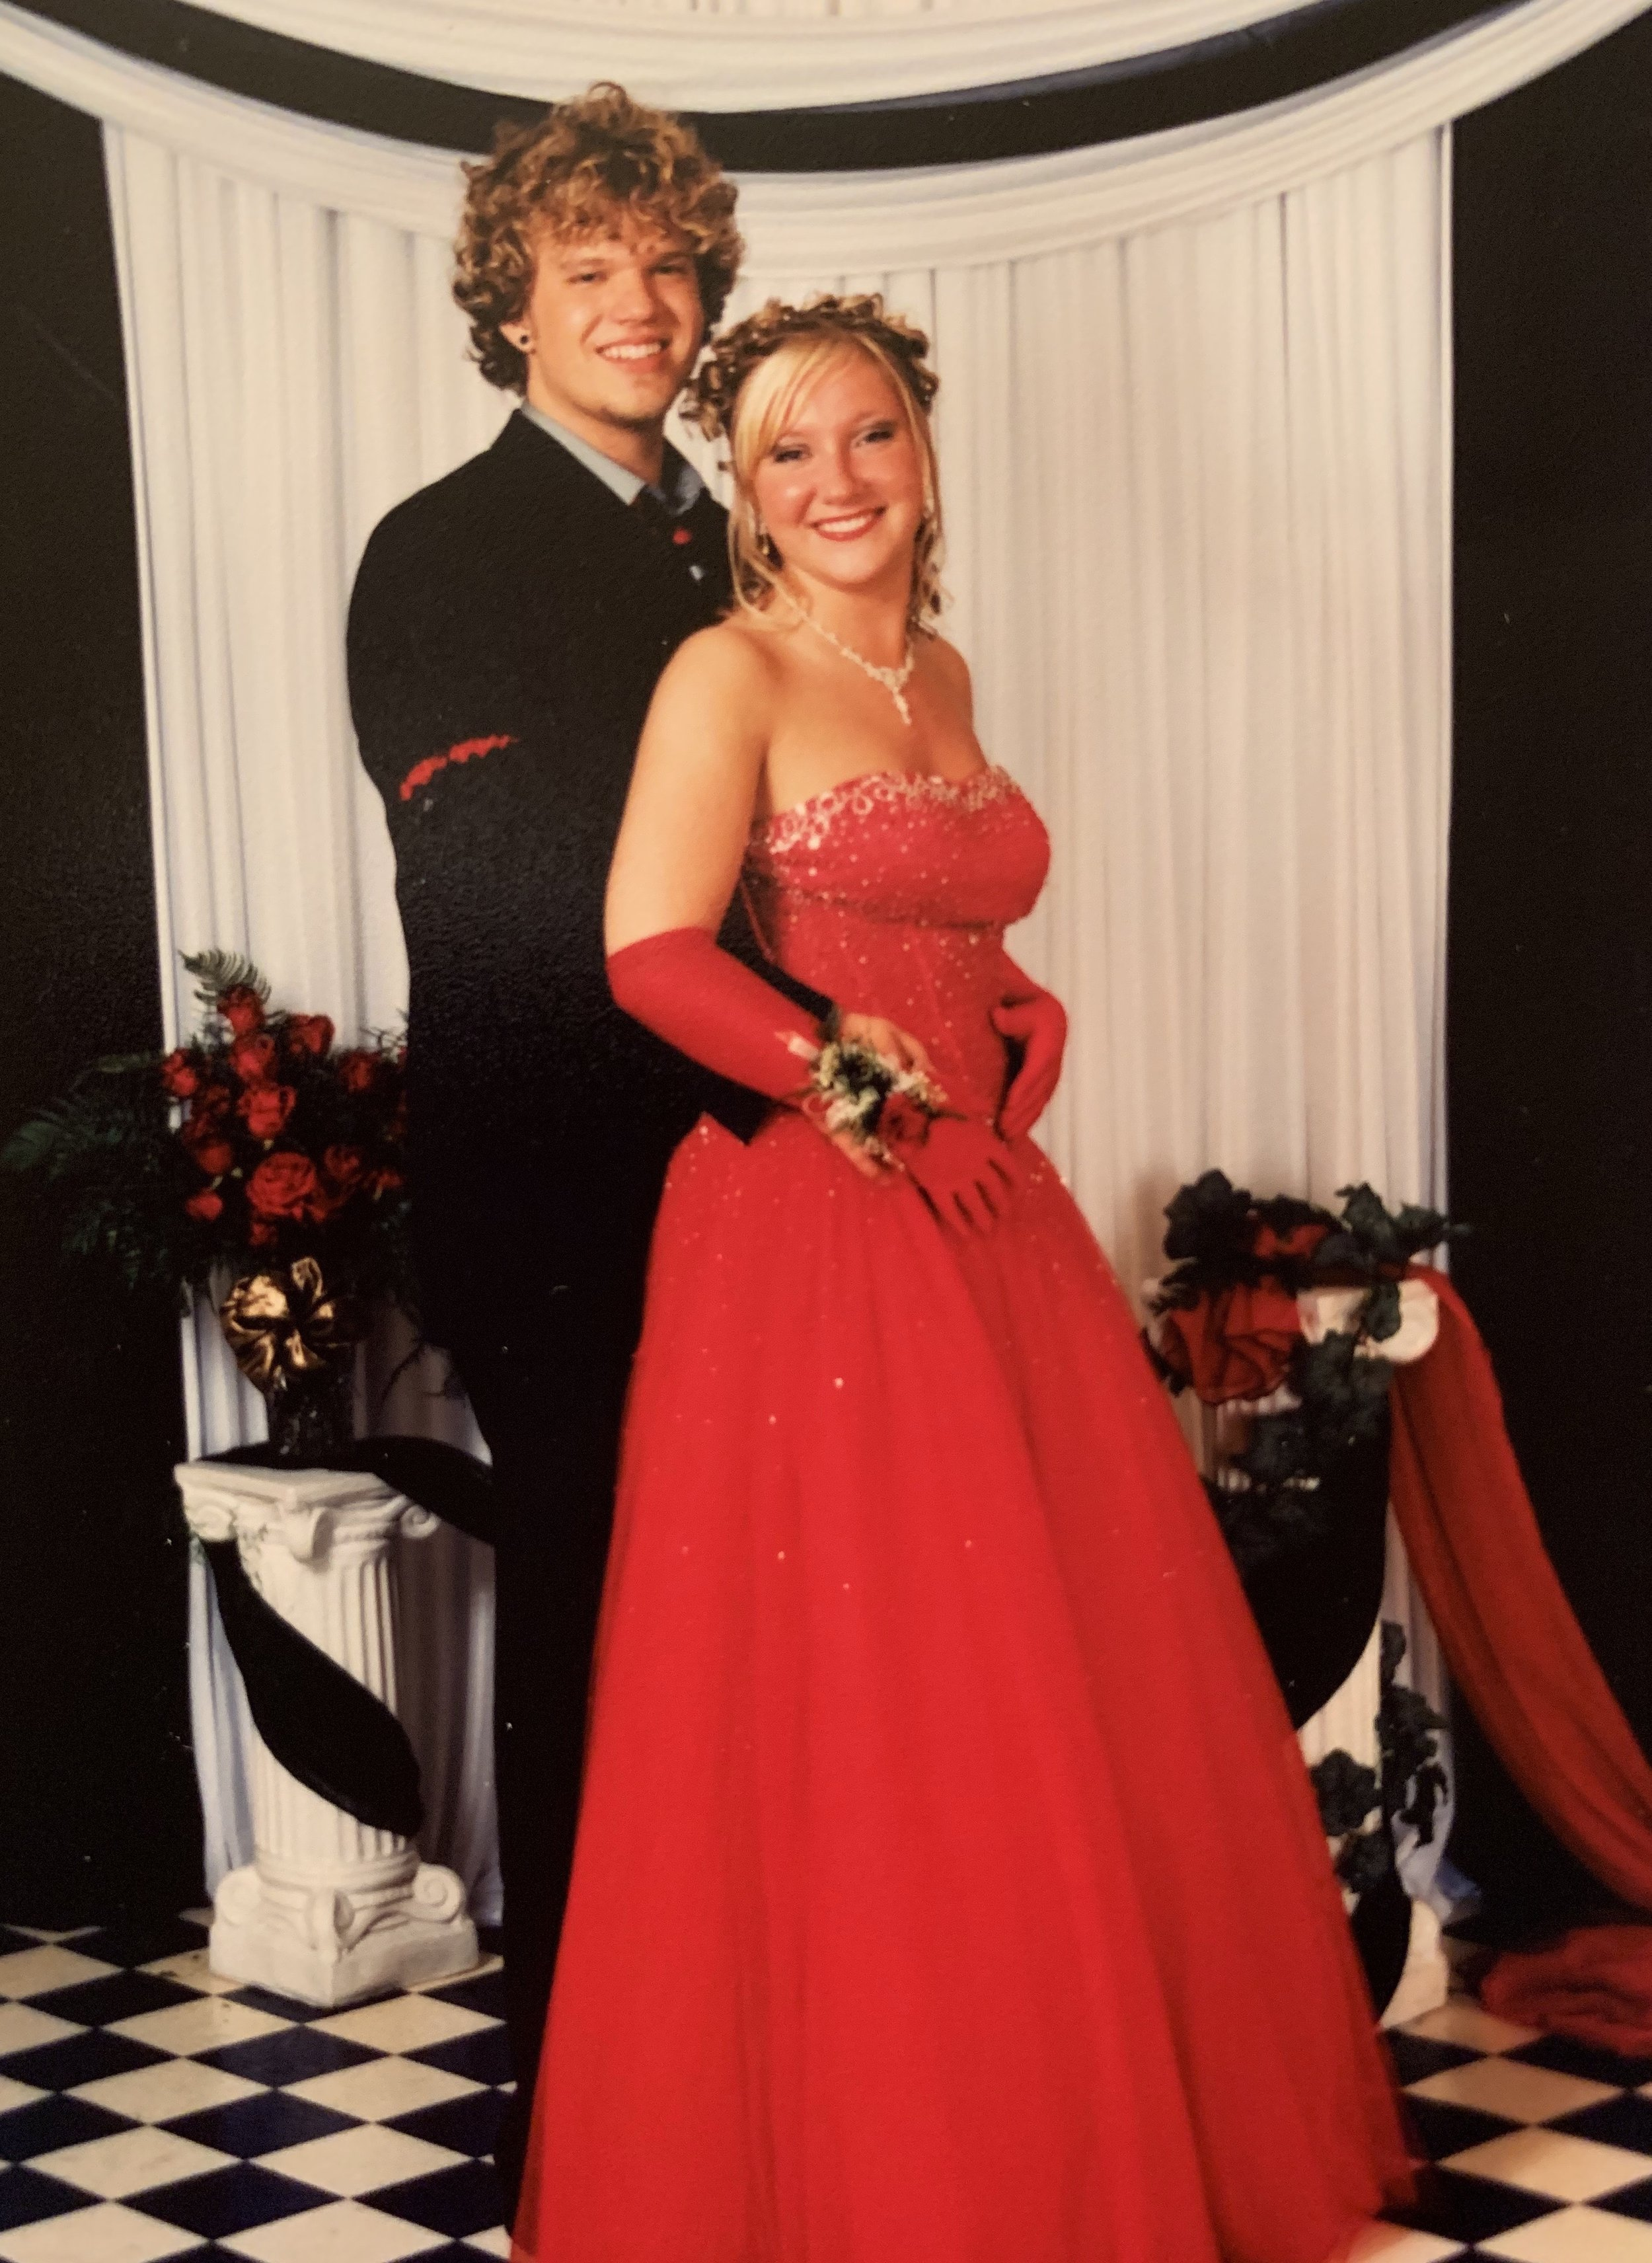 Brittany and Jonah's first date: Brittany's High School Prom in 2005